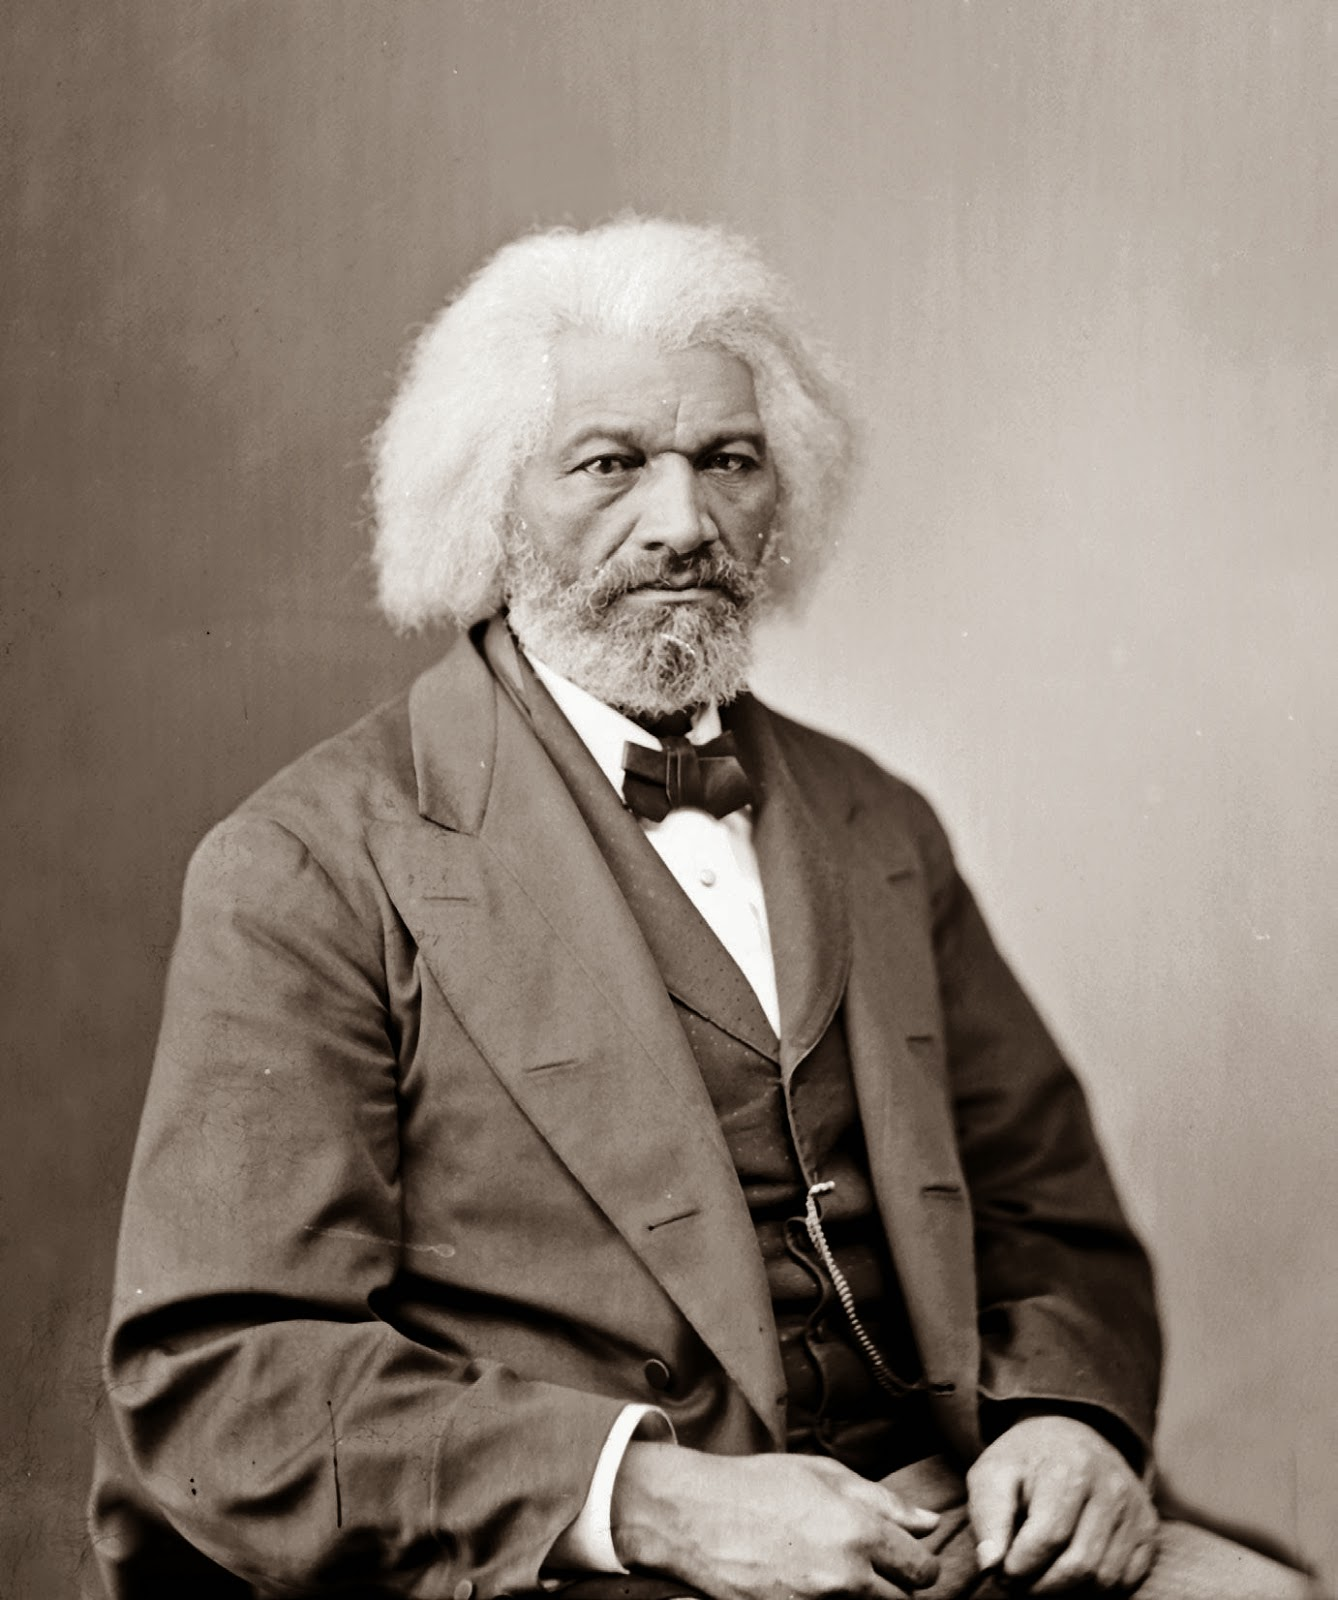 frederick douglass - photo #17